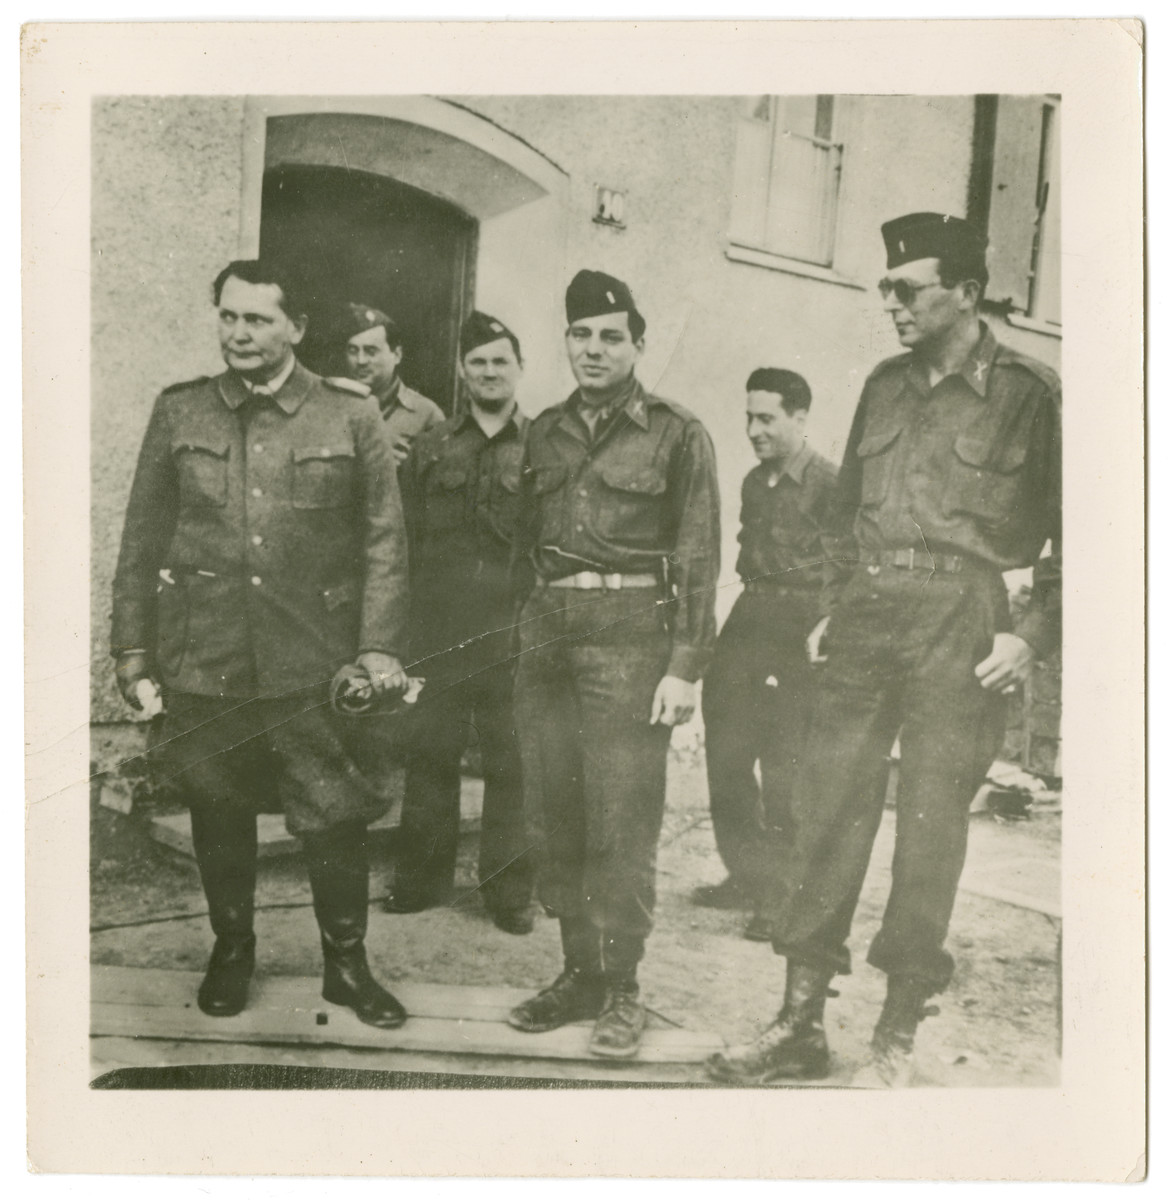 American soldiers surround Hermann Goering after his arrest [or possibly outside the Nuremberg tribunal].   Rolf Wartenberg is pictured in the center.